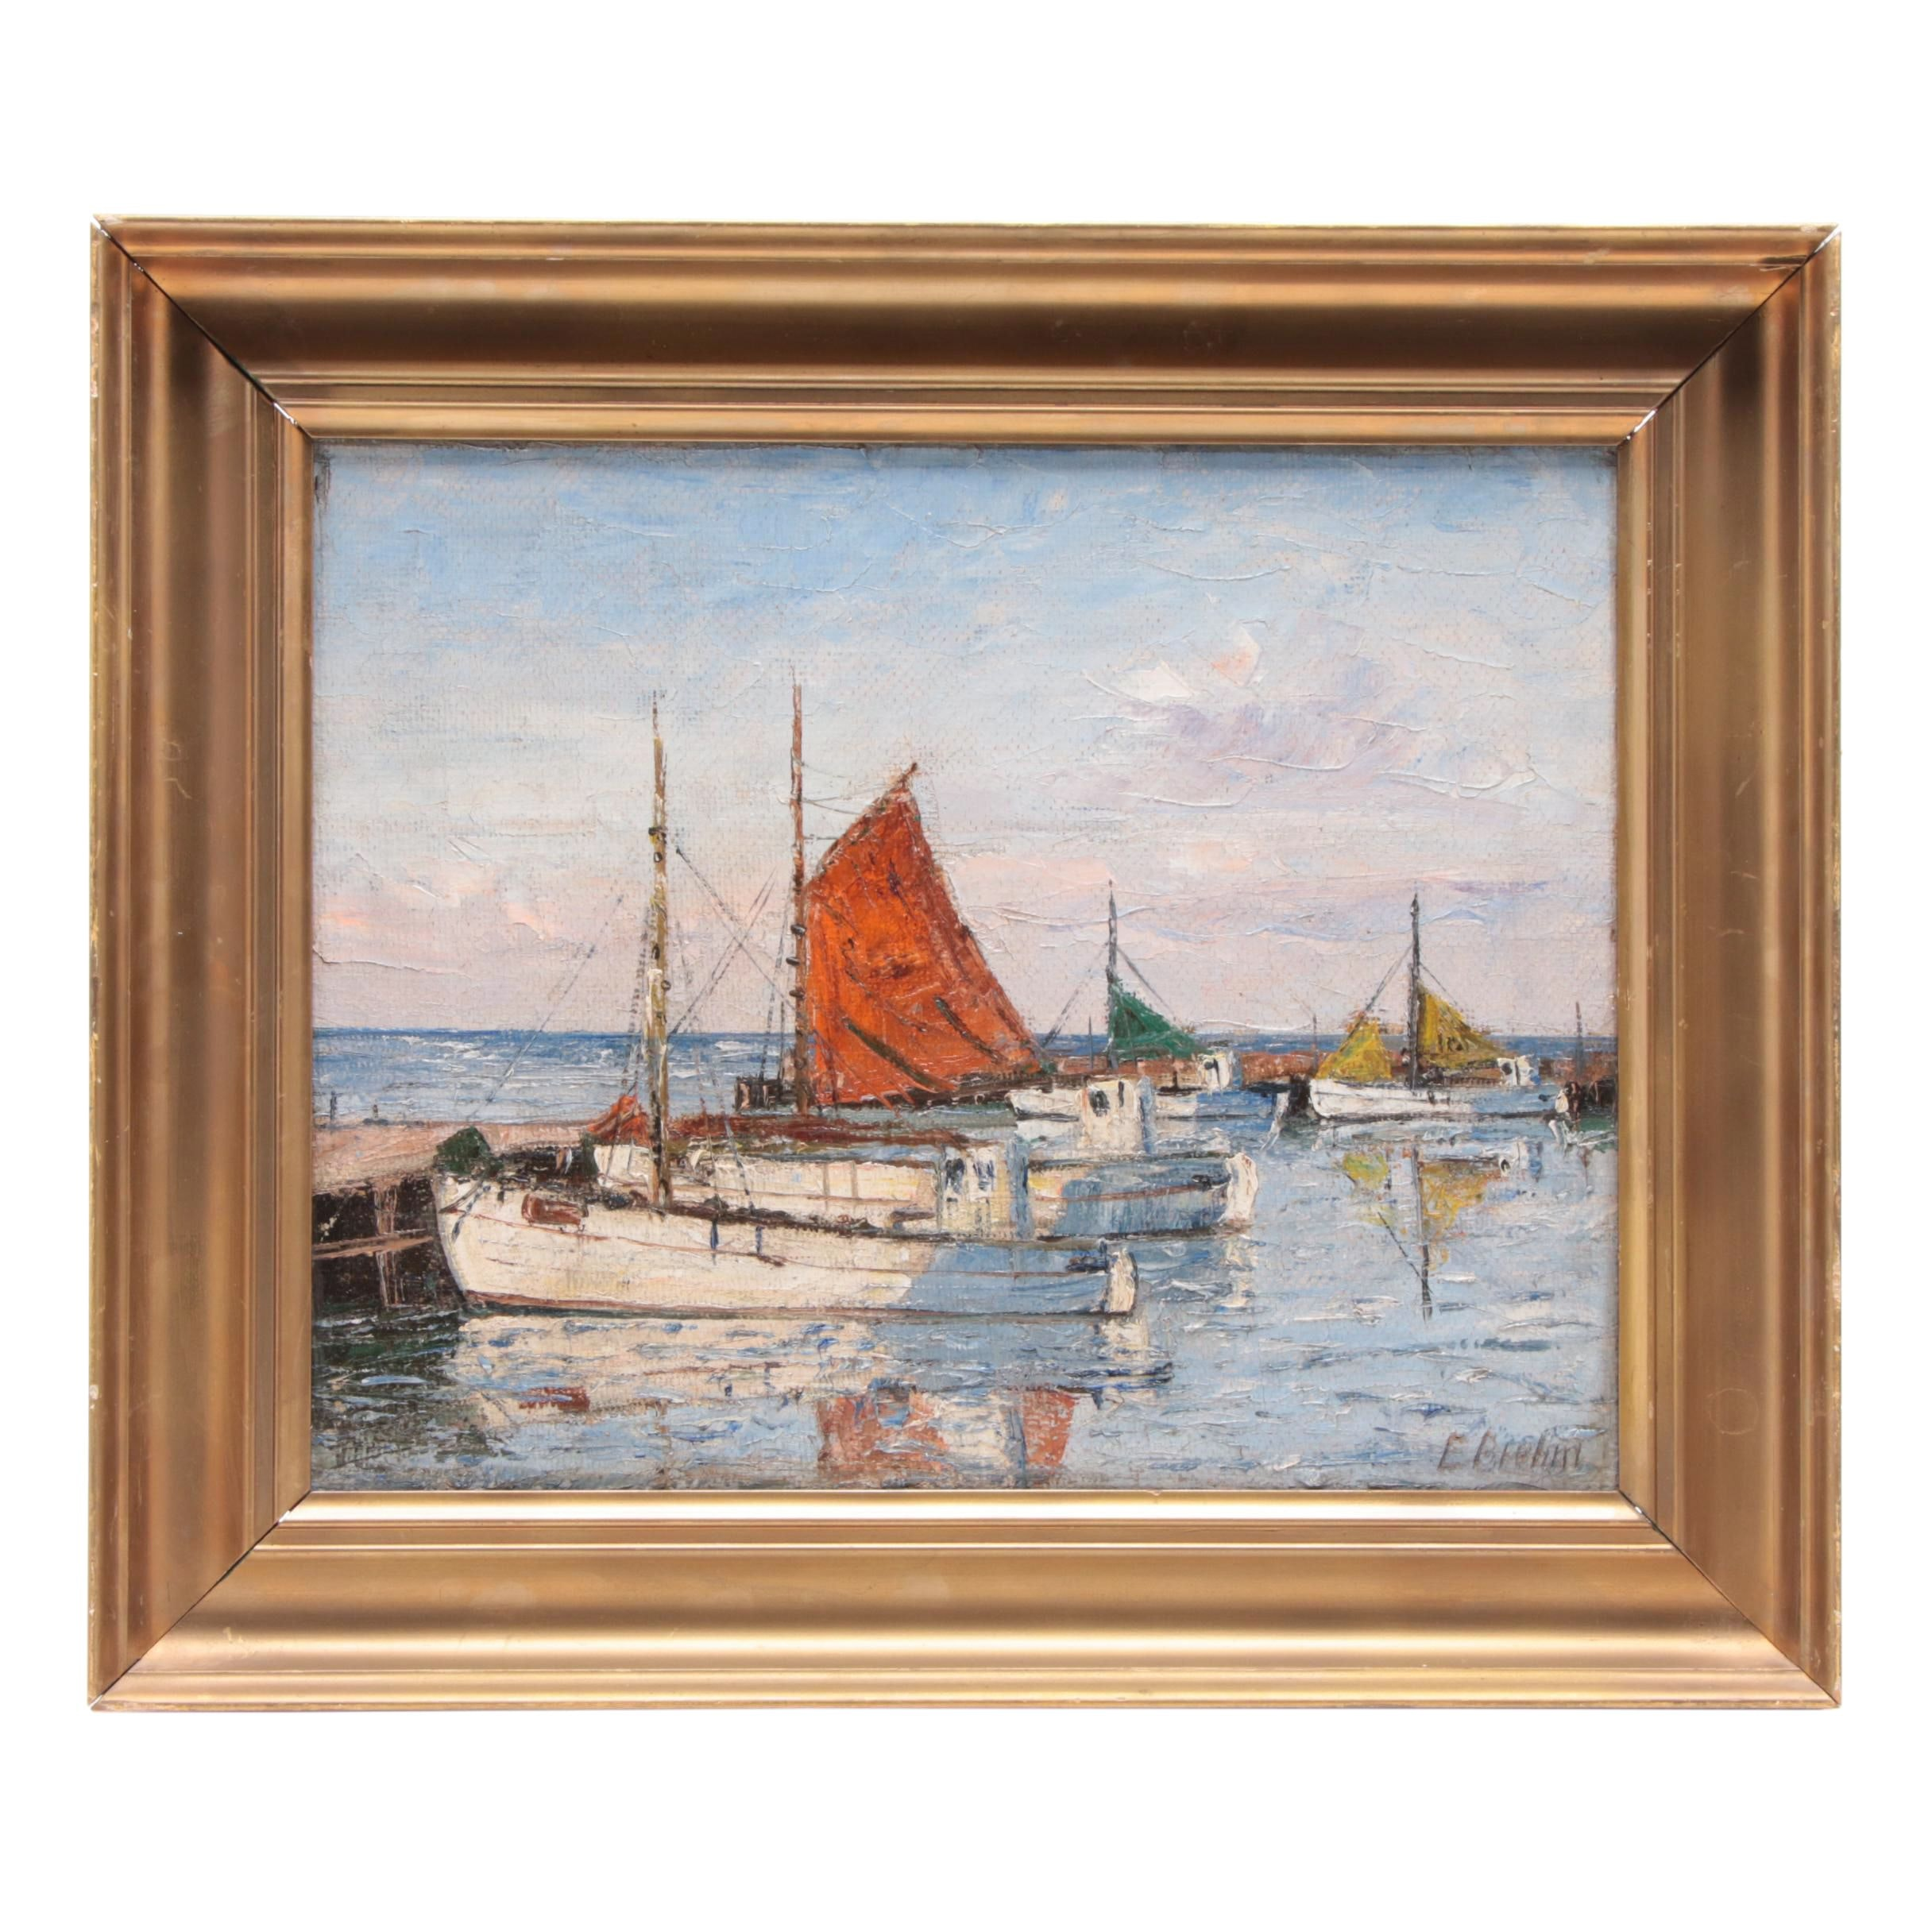 Emil Brehm Oil Painting of Harbor Scene